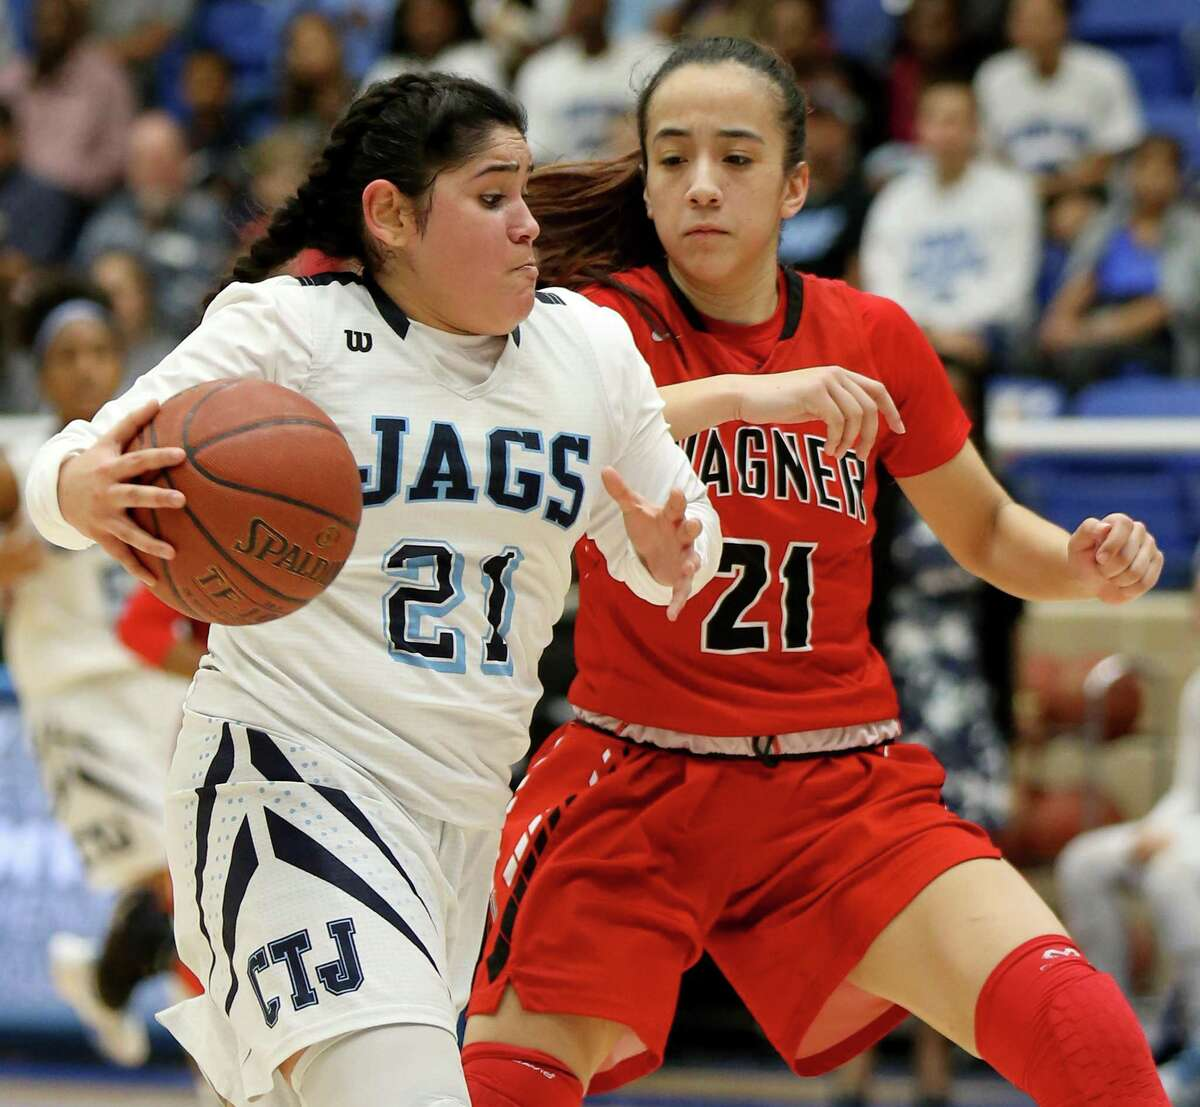 Johnson's Alina Falcon drives around Wagner's Toni Cuellar during second half action of their Class 6A second round girls basketball playoff game held Friday Feb. 17, 2017 at the Northside Sports Gym. Johnson won 72-61.